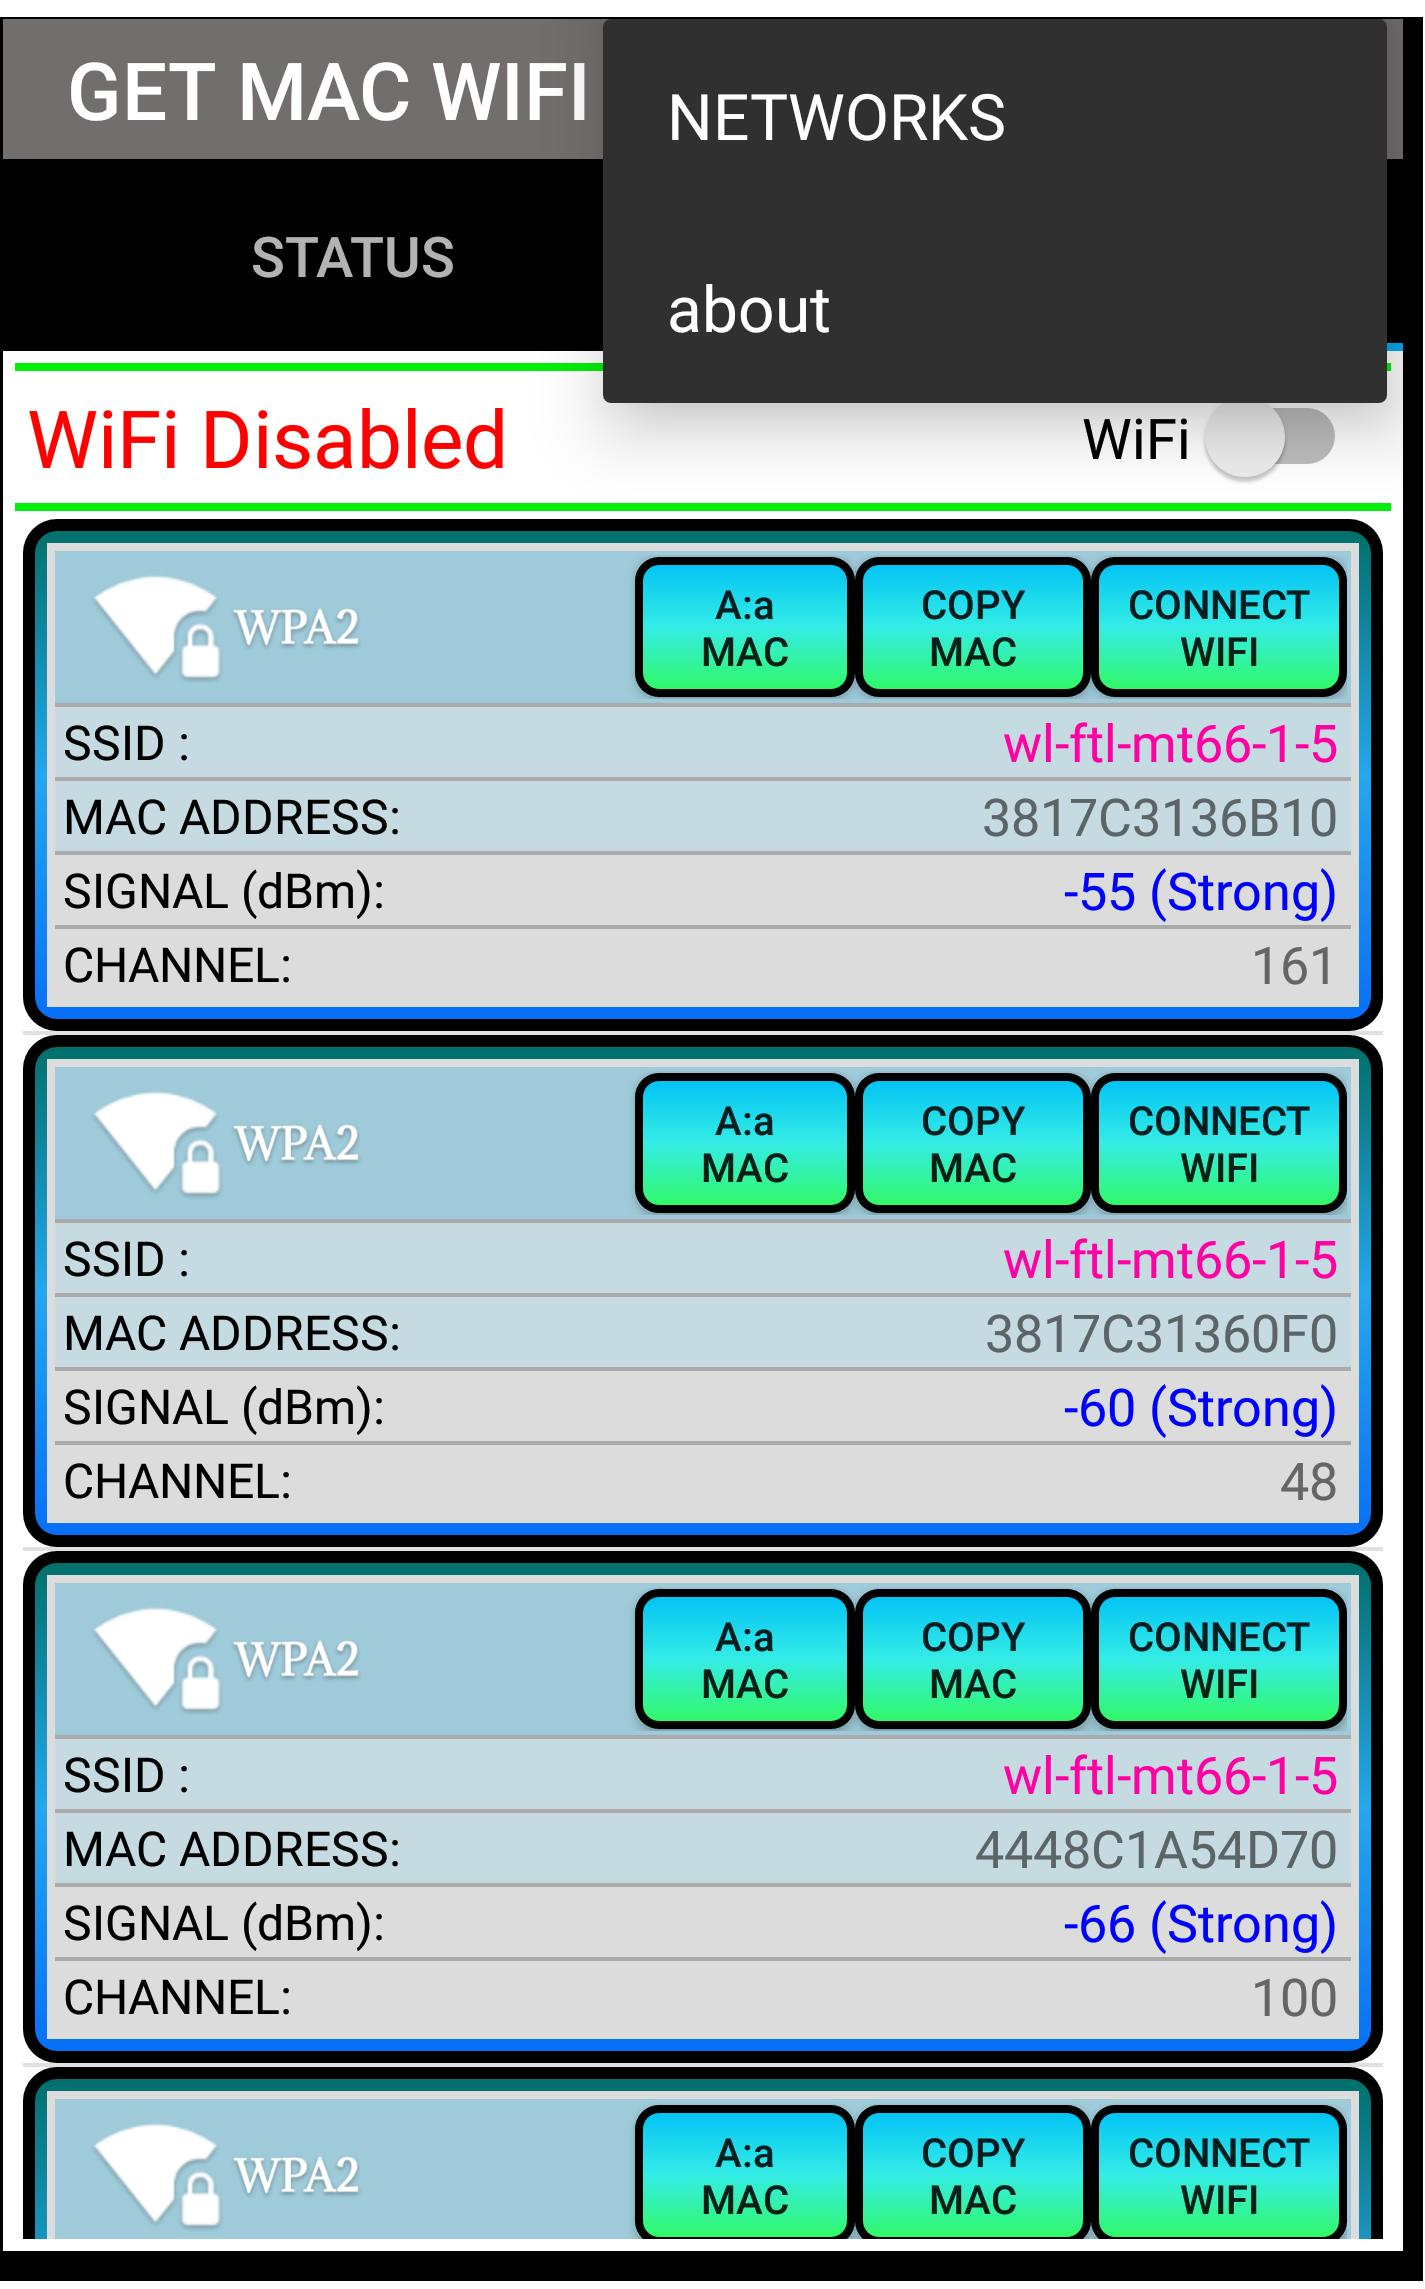 Get Mac WiFi for Android - APK Download